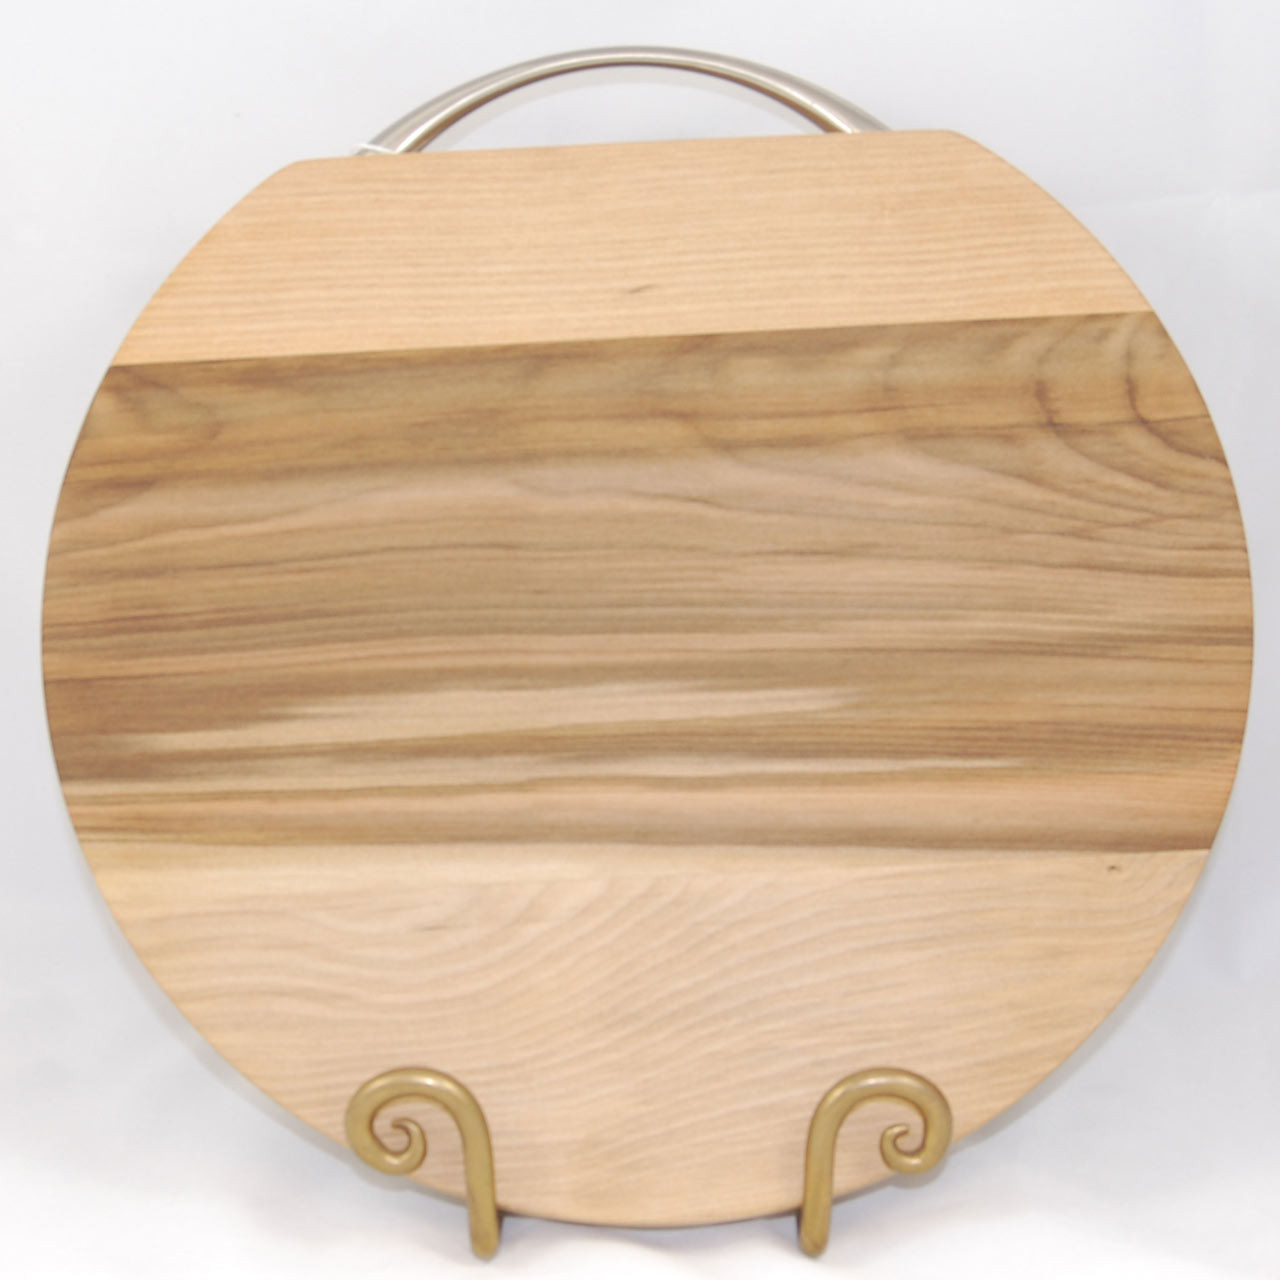 Round Wooden Cheese Board With Handle Wood Platter